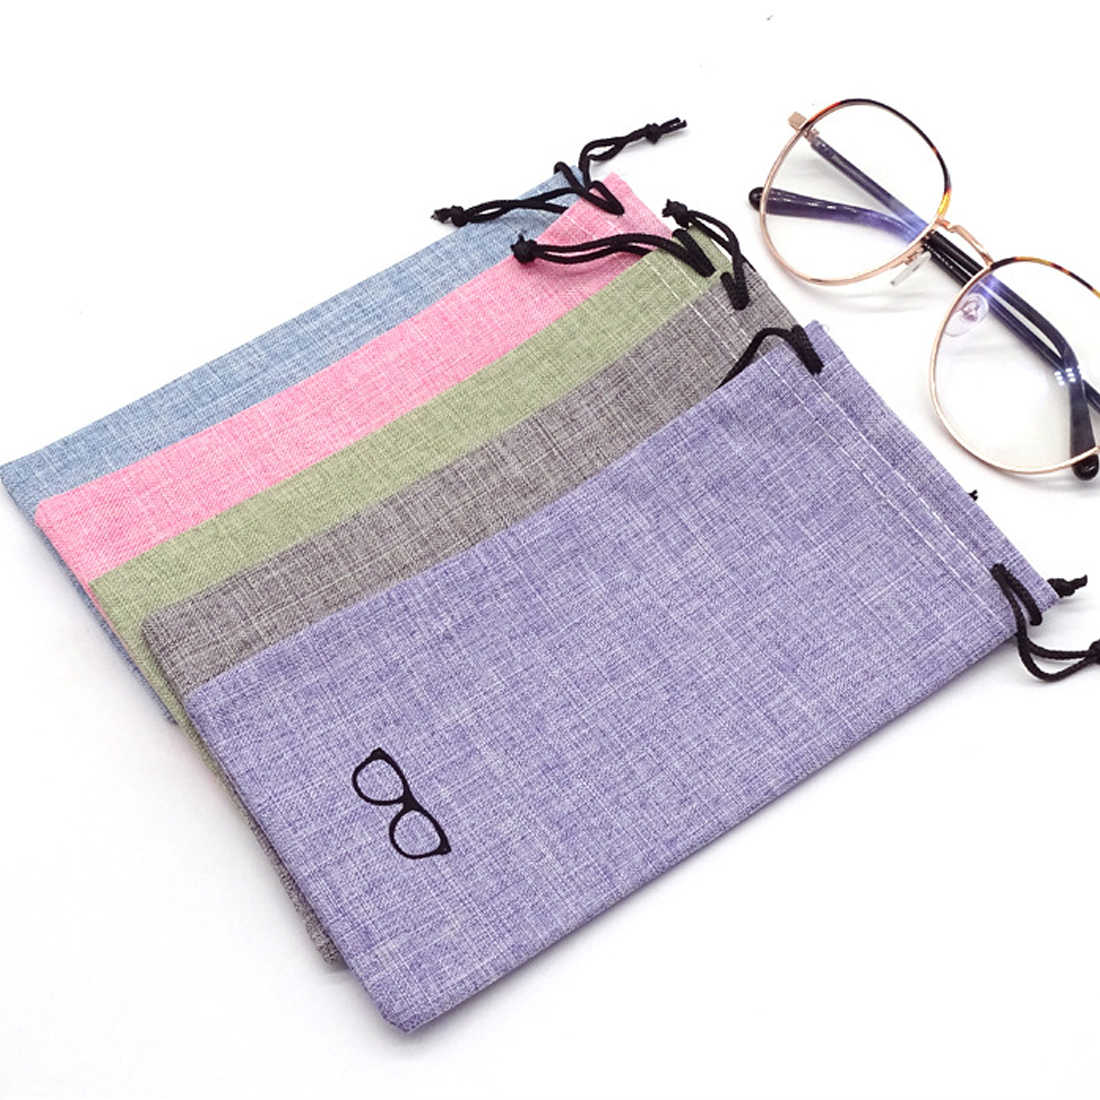 1PC Portable Linen Fabric Sunglasses Pouch For Eyewear Smooth Surface Container Glasses Bag 4 Colors